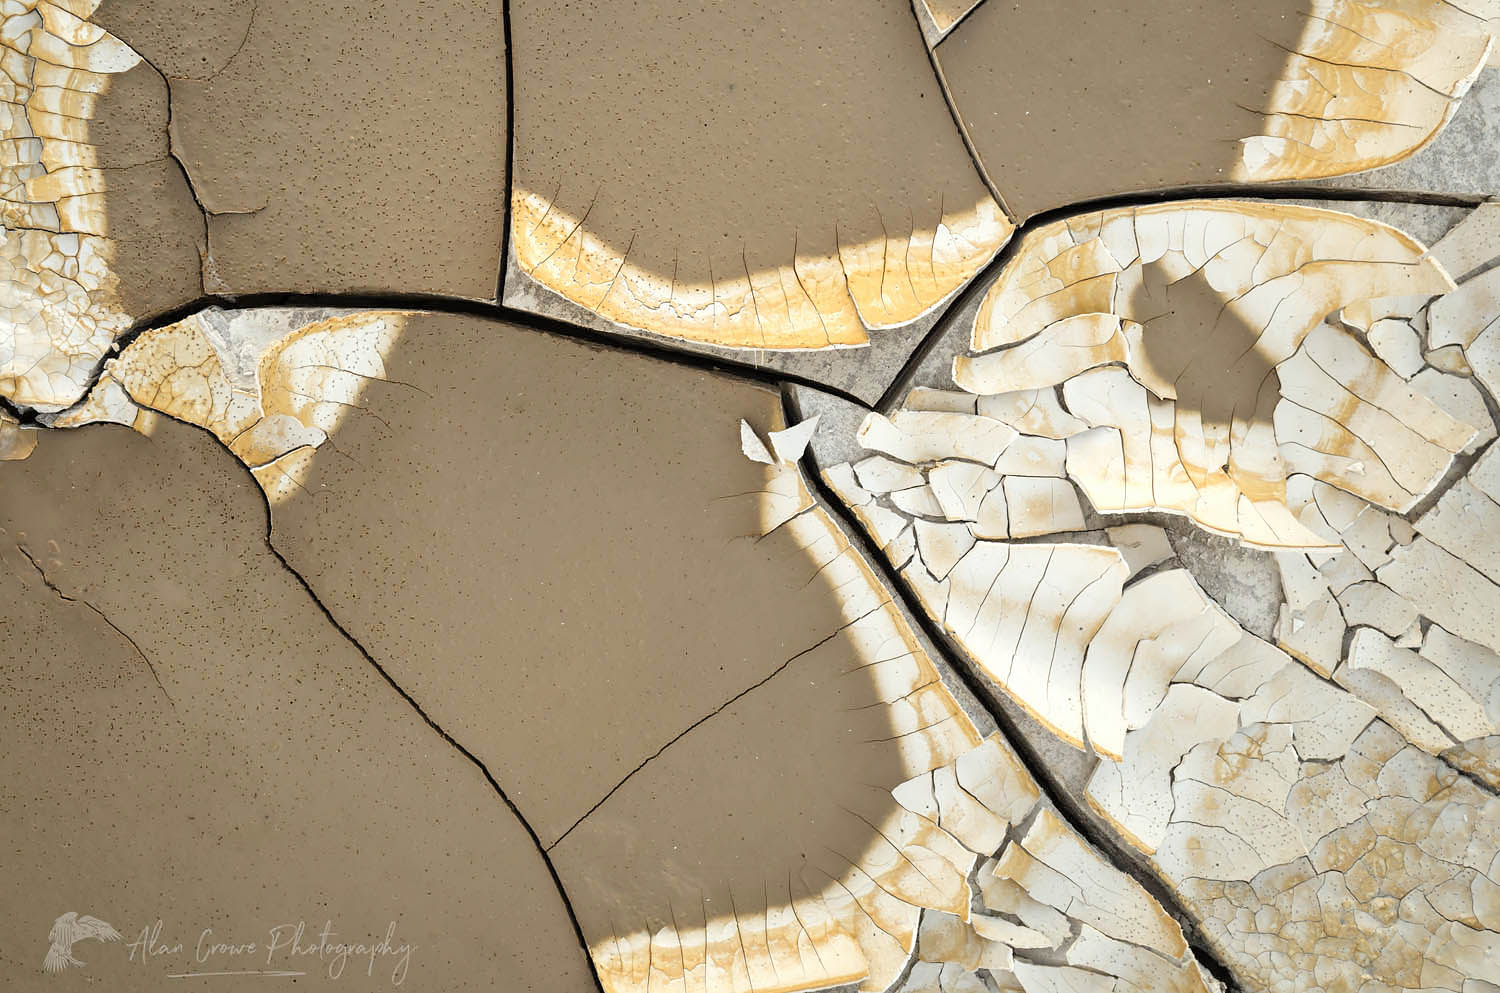 Cracked mud patterns